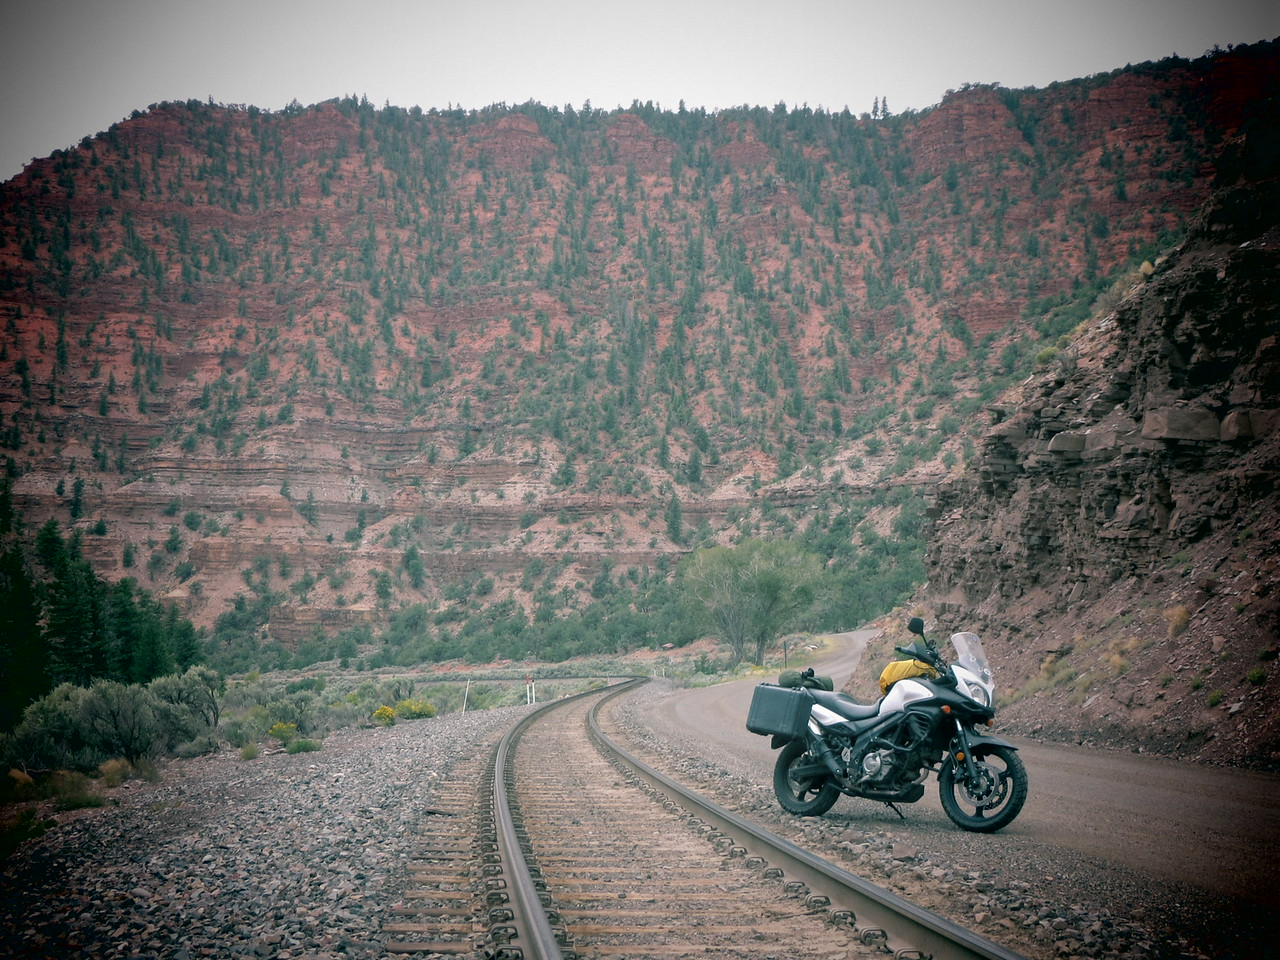 Day 3 (363 miles):   Colorado River Headwaters Scenic Byway.   I love this picture.  The road and the track are basically one, being squeezed together through the canyon by the Colorado River.  It's easy to imagine a horse casually parked (?) in that same spot 100 years ago, with nothing else having changed in the years since.